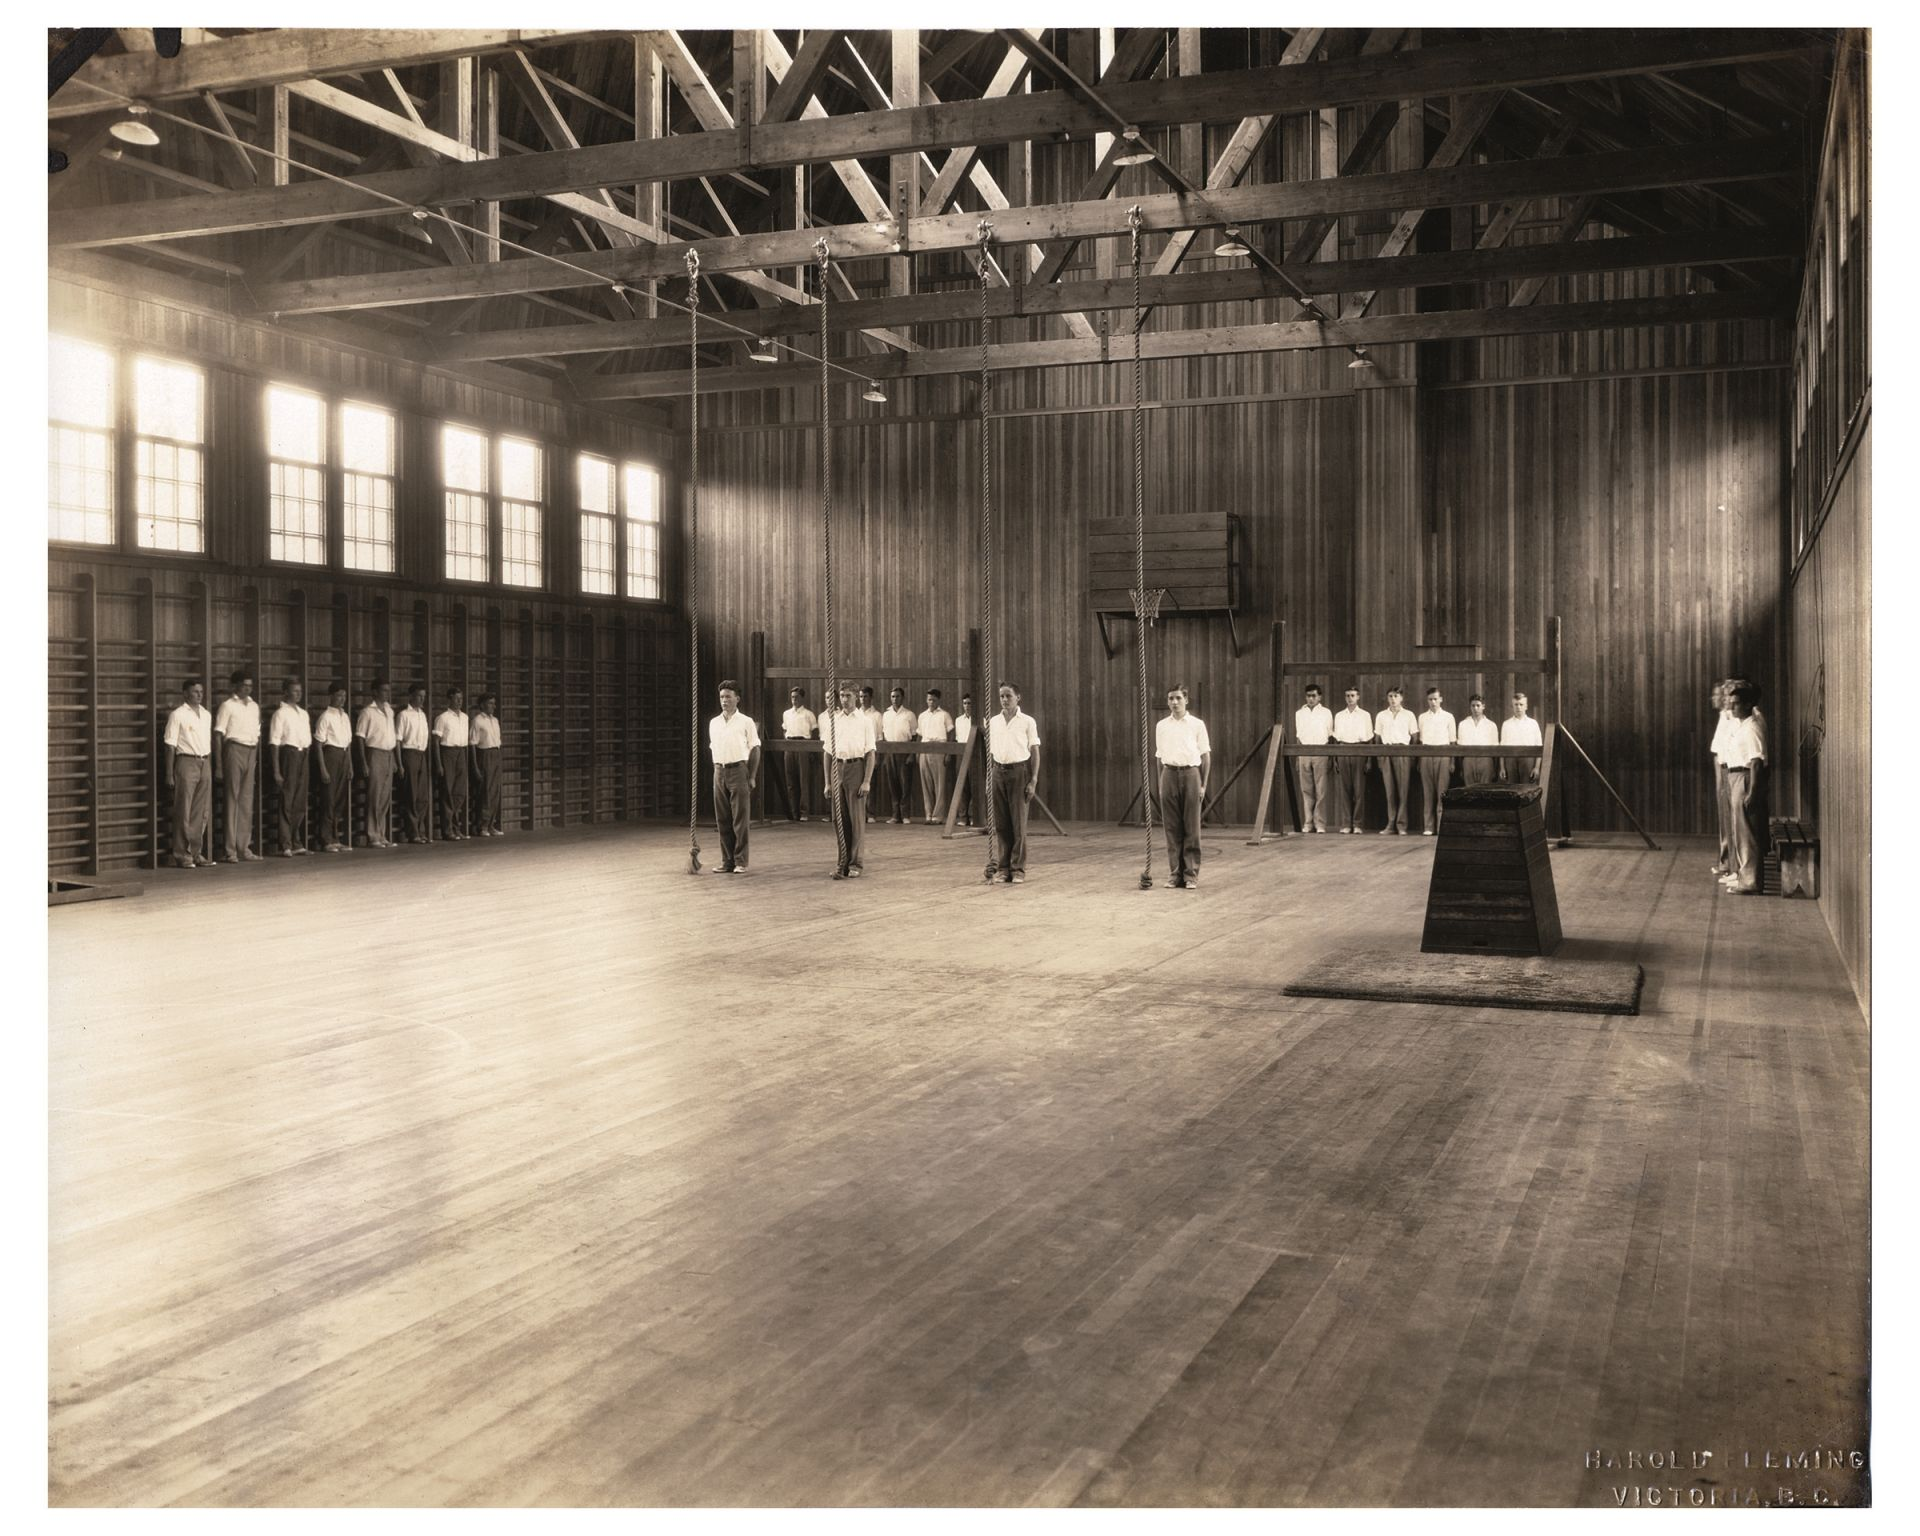 Boys ready to climb ropes in the gym, 1932